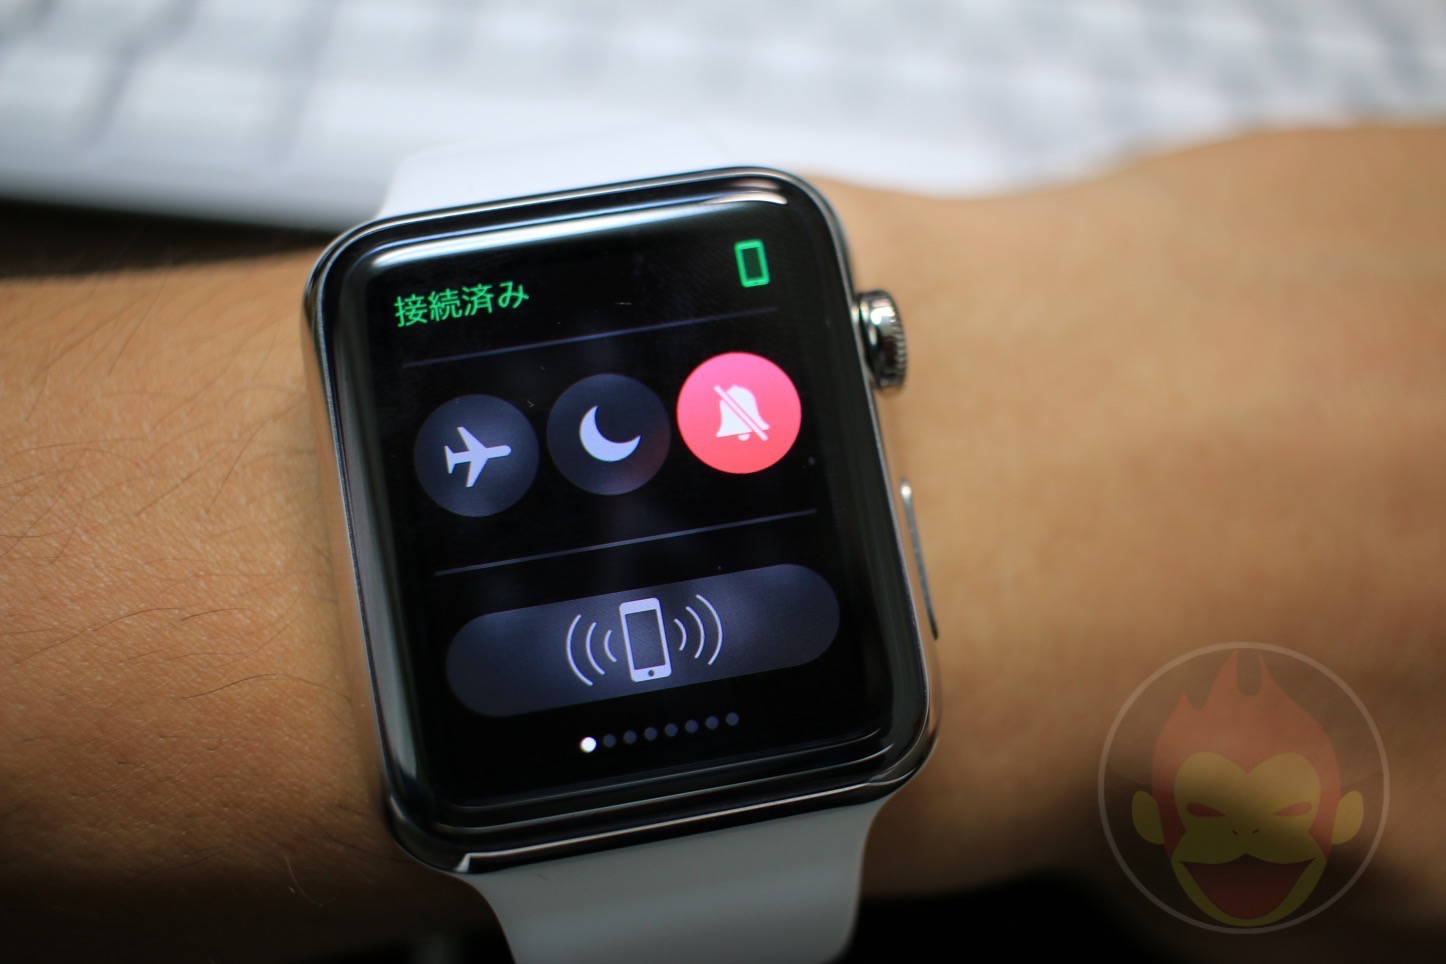 Apple-Watch-Getting-Most-Out-Of-Battery-0046.JPG